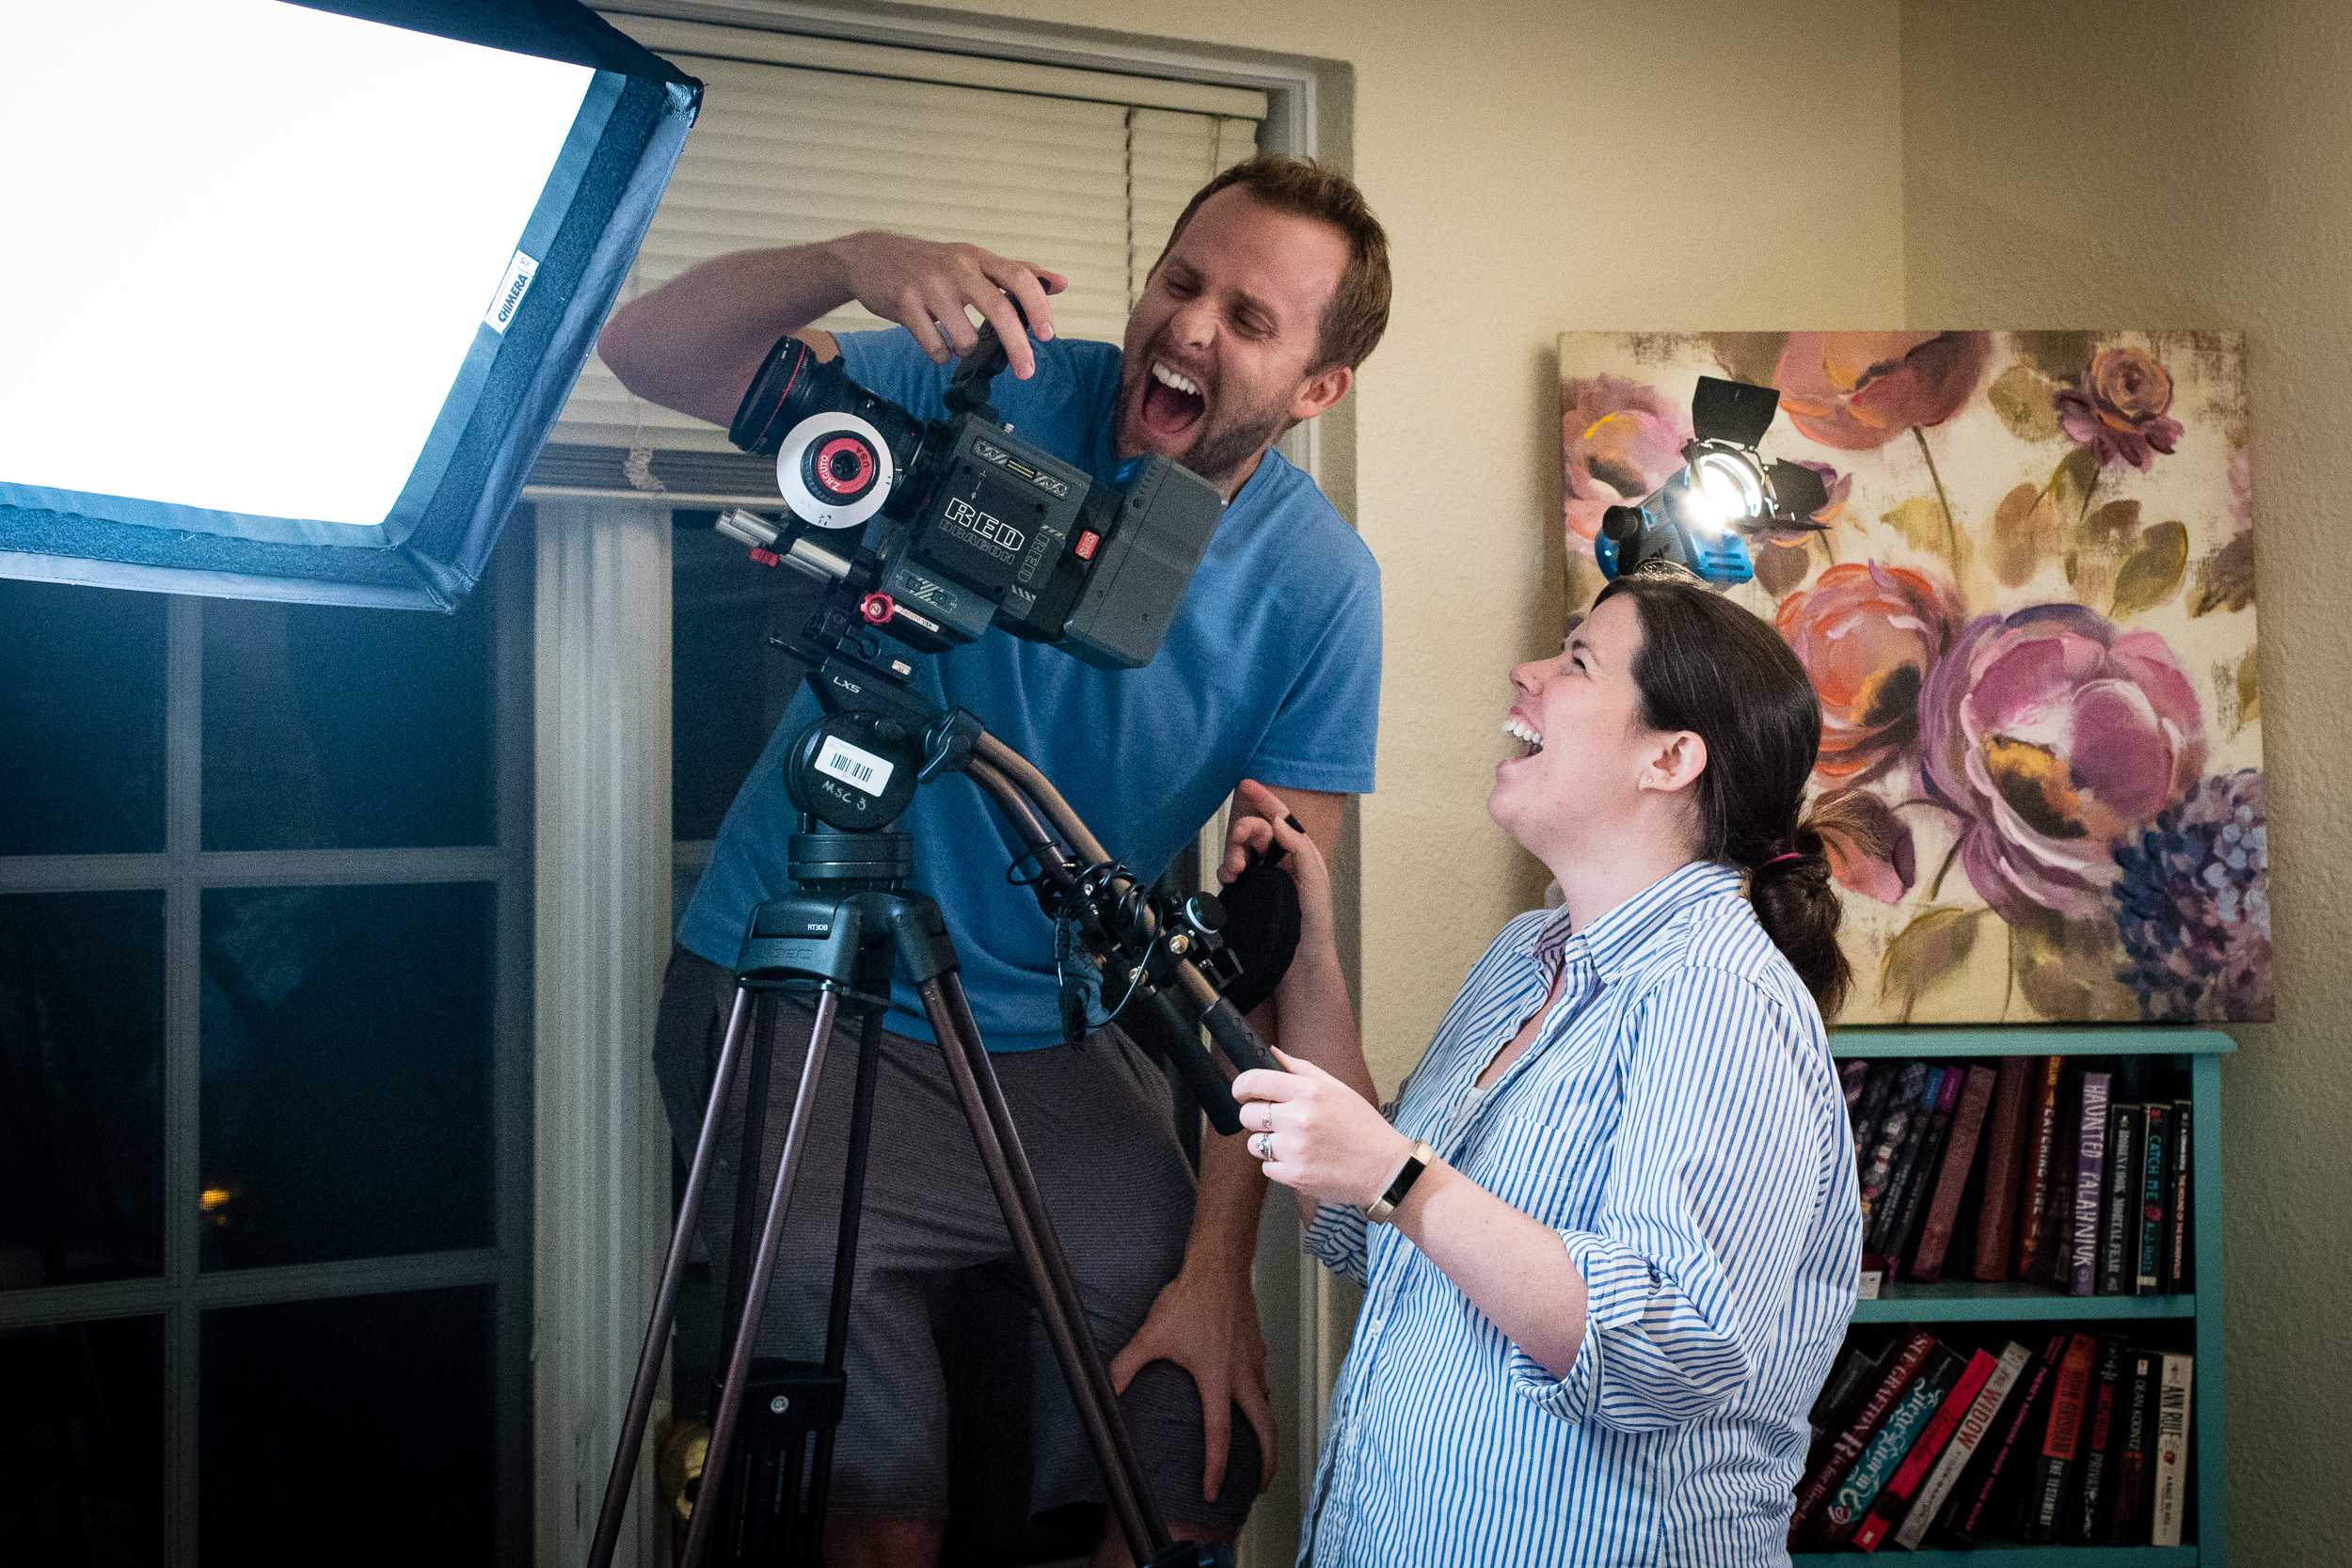 Day 4: DP Eric Lines and Director/Editor Katie Stanley enjoying footage from the day.